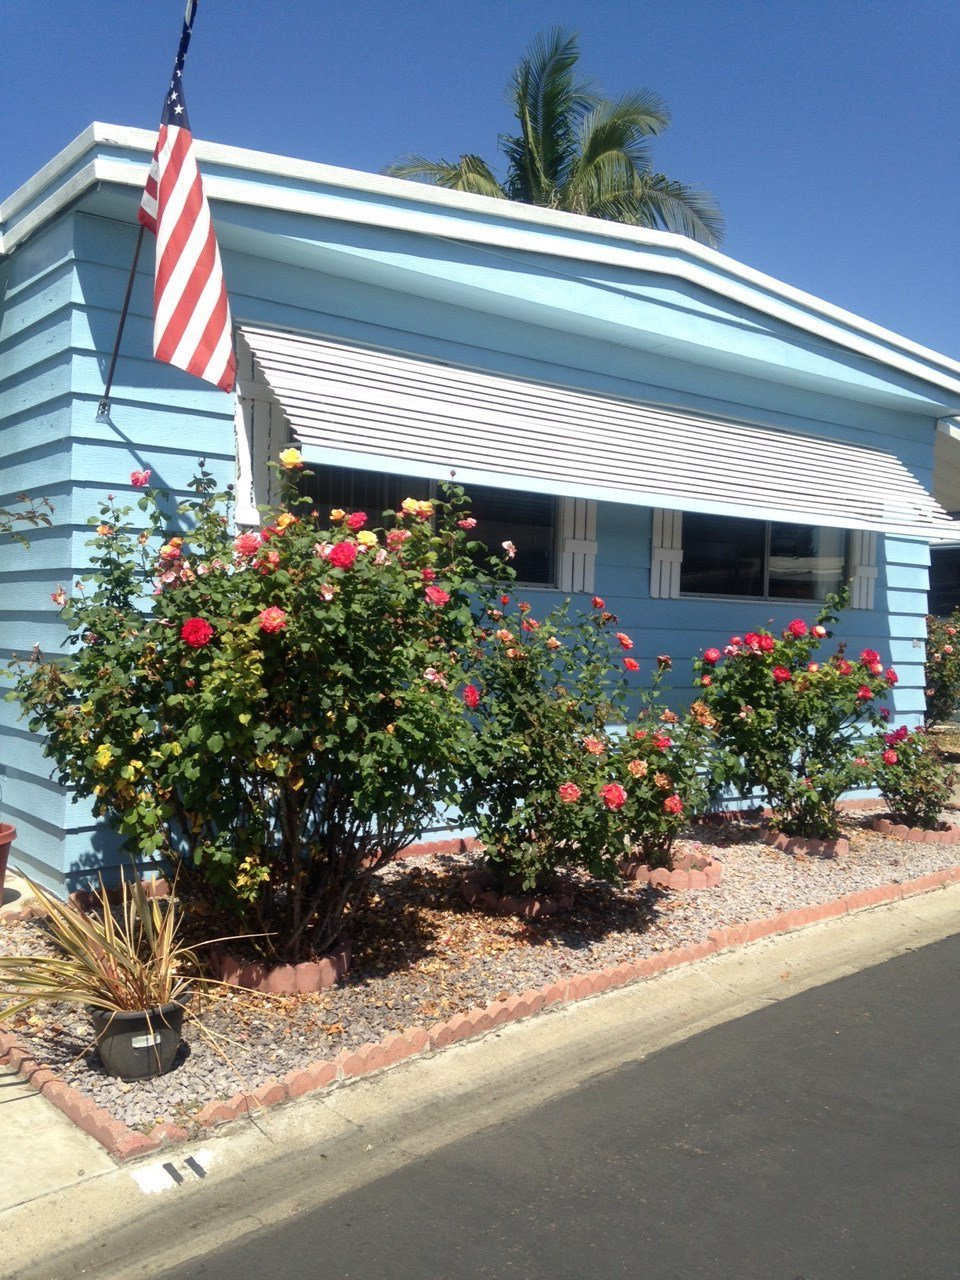 Main Photo: OCEANSIDE Manufactured Home for sale : 2 bedrooms : 221 N El Camino Real #11